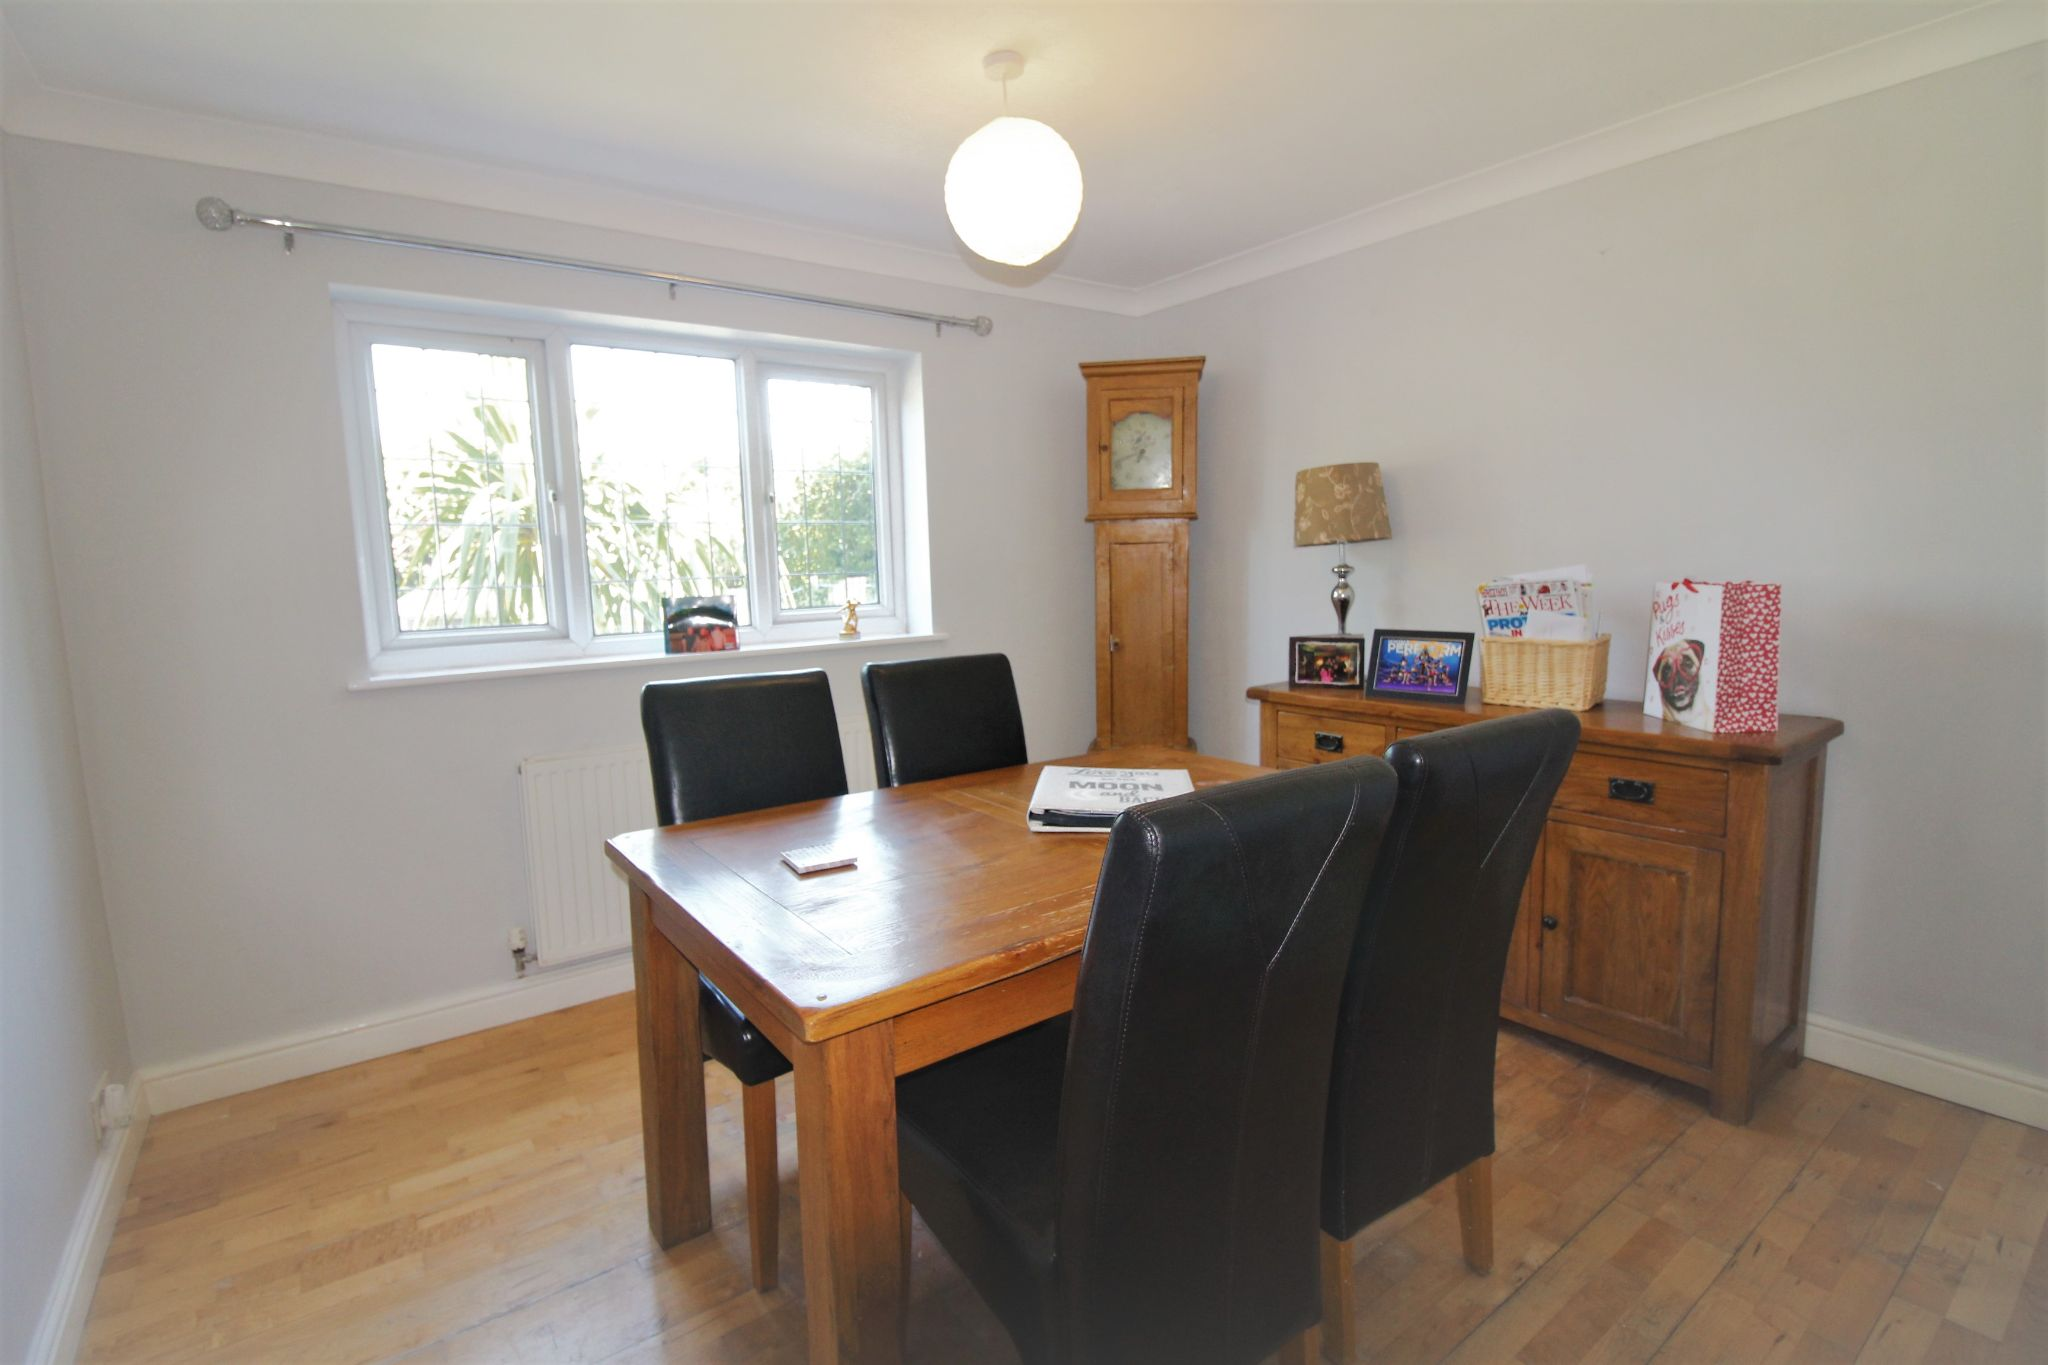 6 bedroom detached house For Sale in Solihull - Photograph 7.